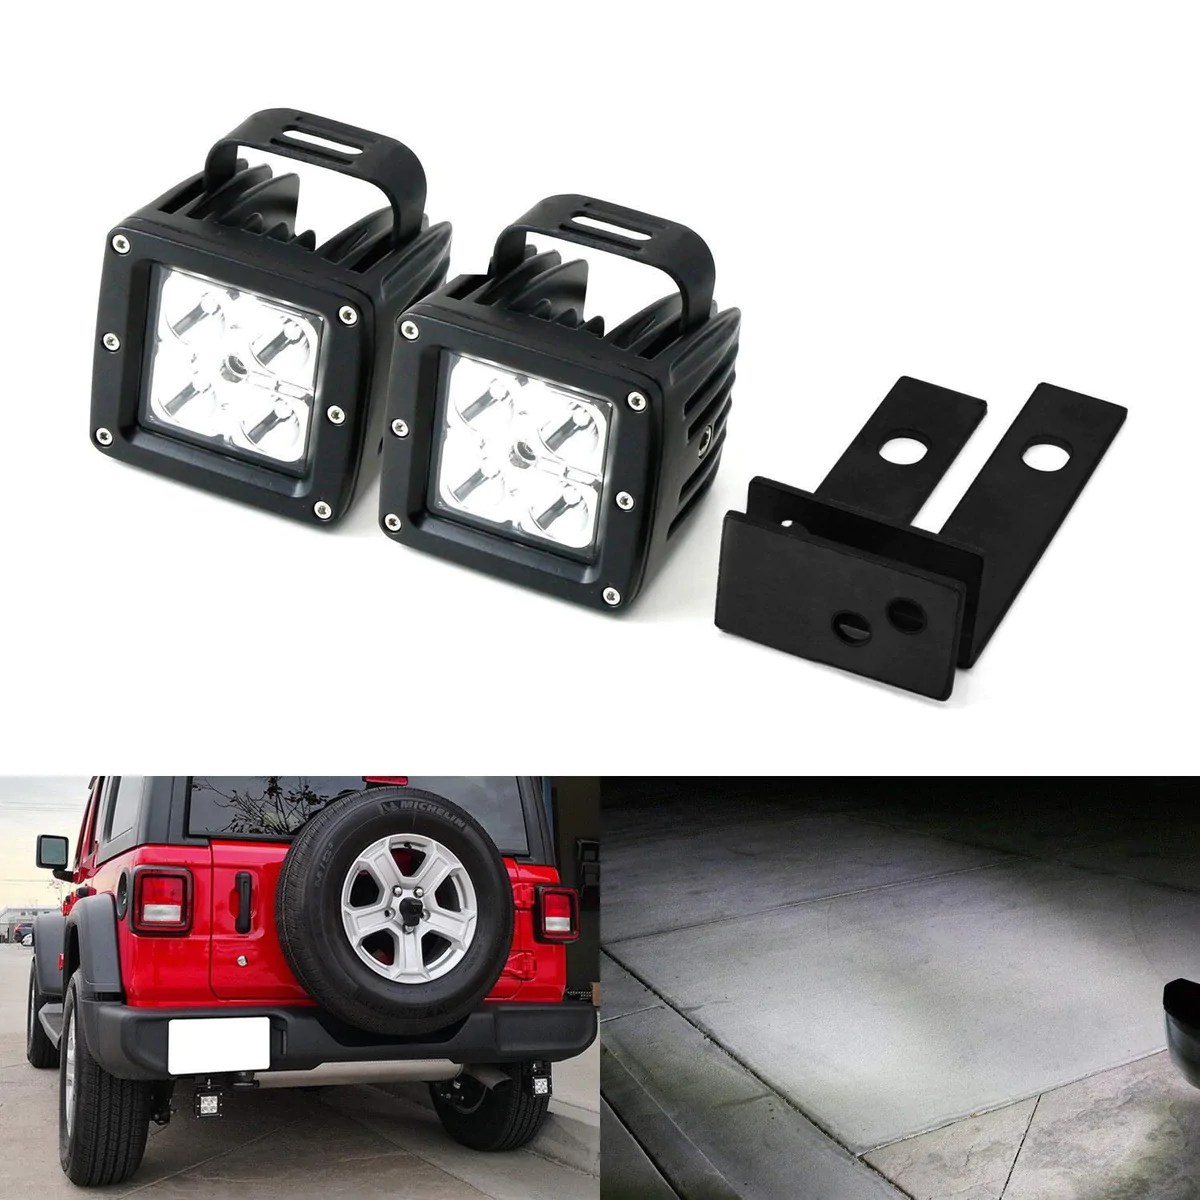 small resolution of rear bumper searchlight reverse led pod light kit for 2018 up jeep wrangler jl includes 2 20w high power cree led pods rear bumper frame mounting